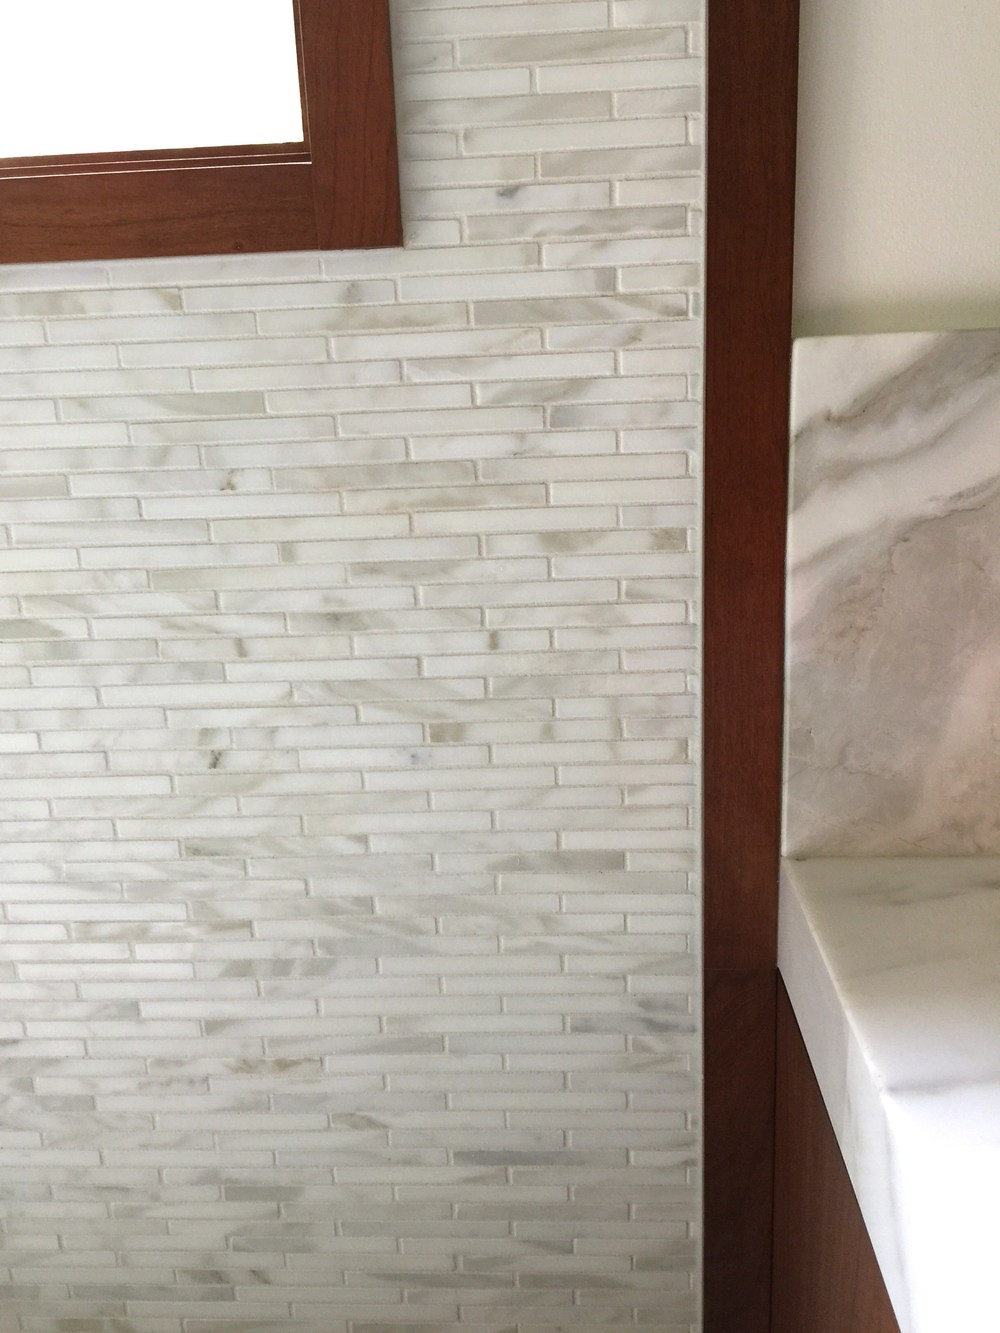 Details - Master Bath tile and moulding | Interior Designer: Carla Aston